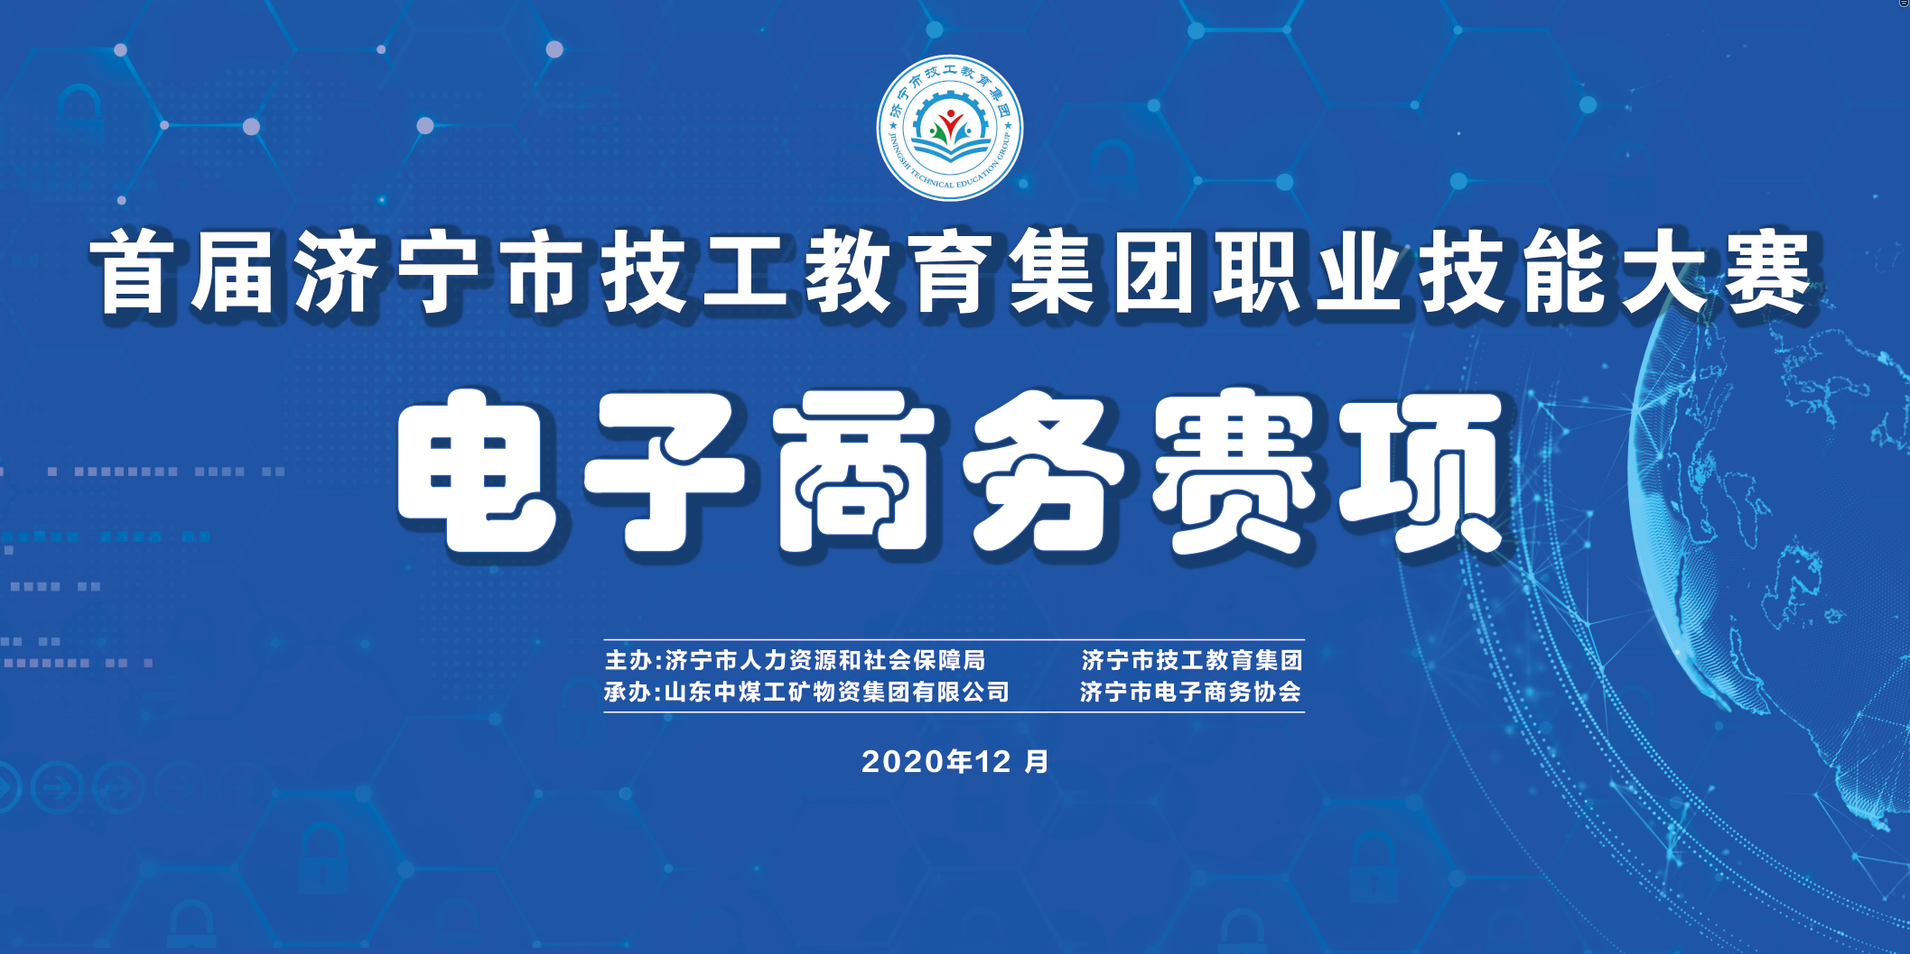 Congratulations To The First Jining City Technical Education Group Vocational Skills Competition E-Commerce Competition Successfully Held In China Coal Group